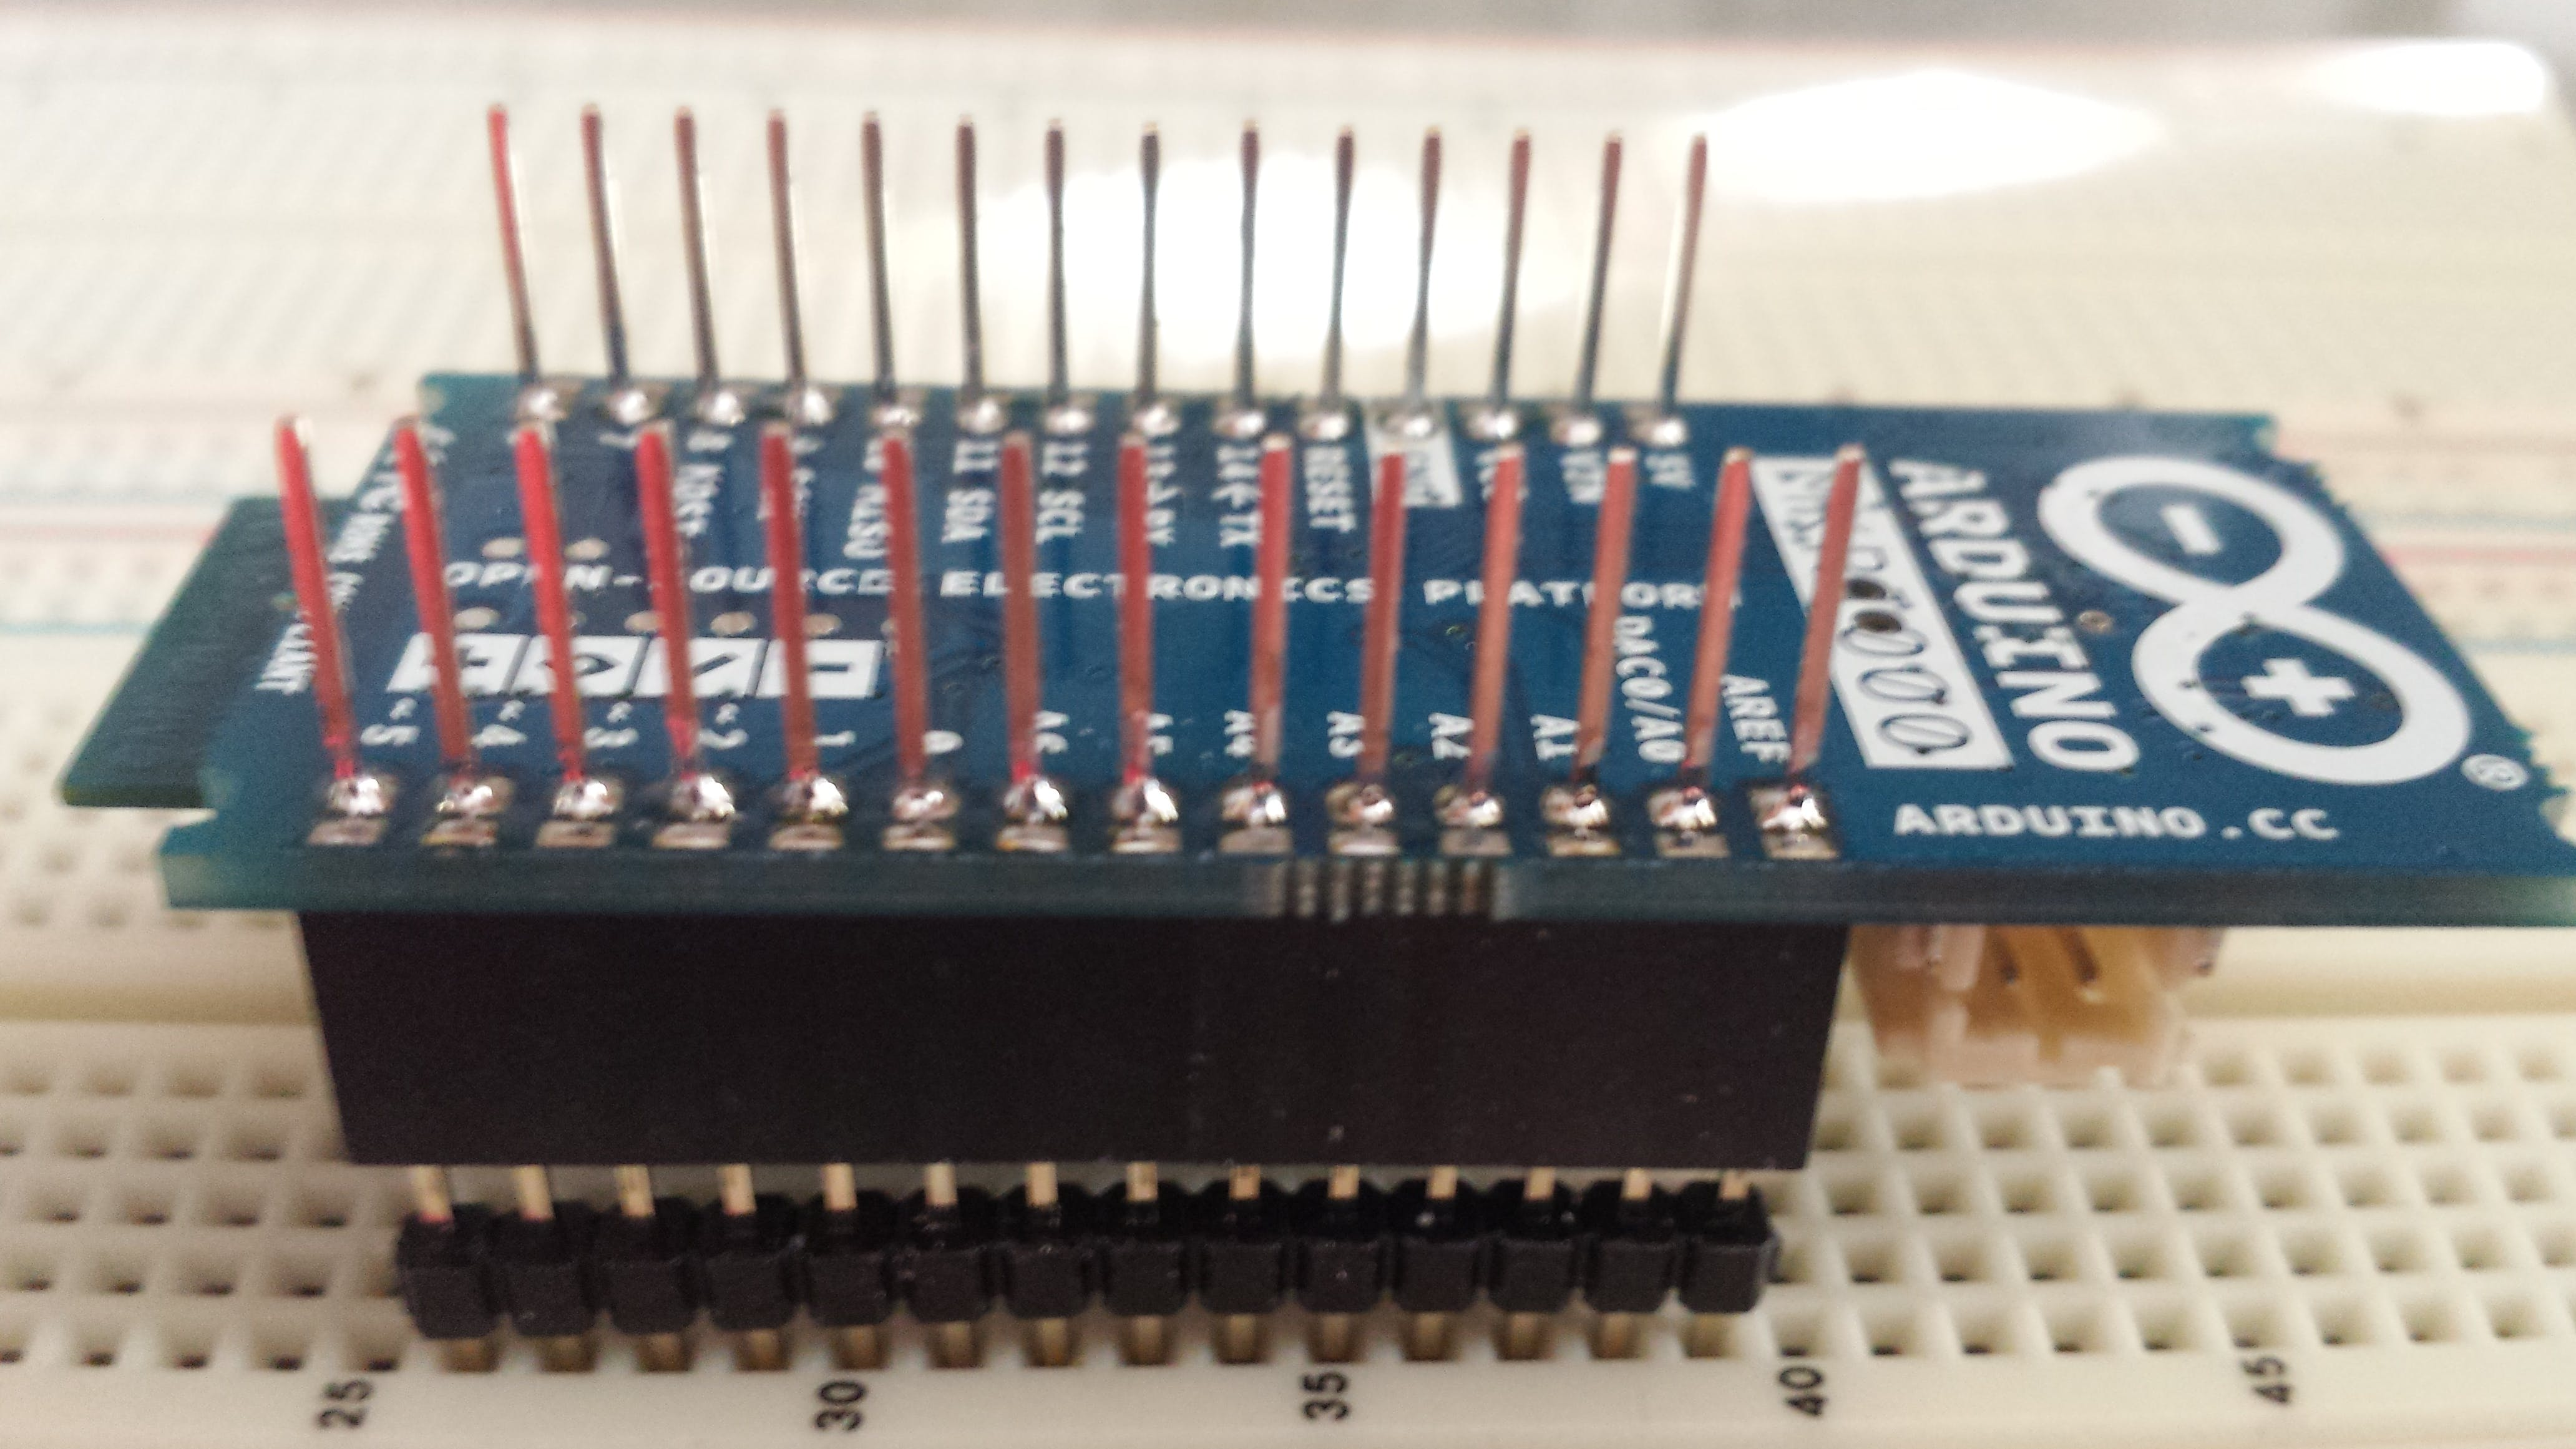 MKR1000 with long Arduino Stacking pins already soldered